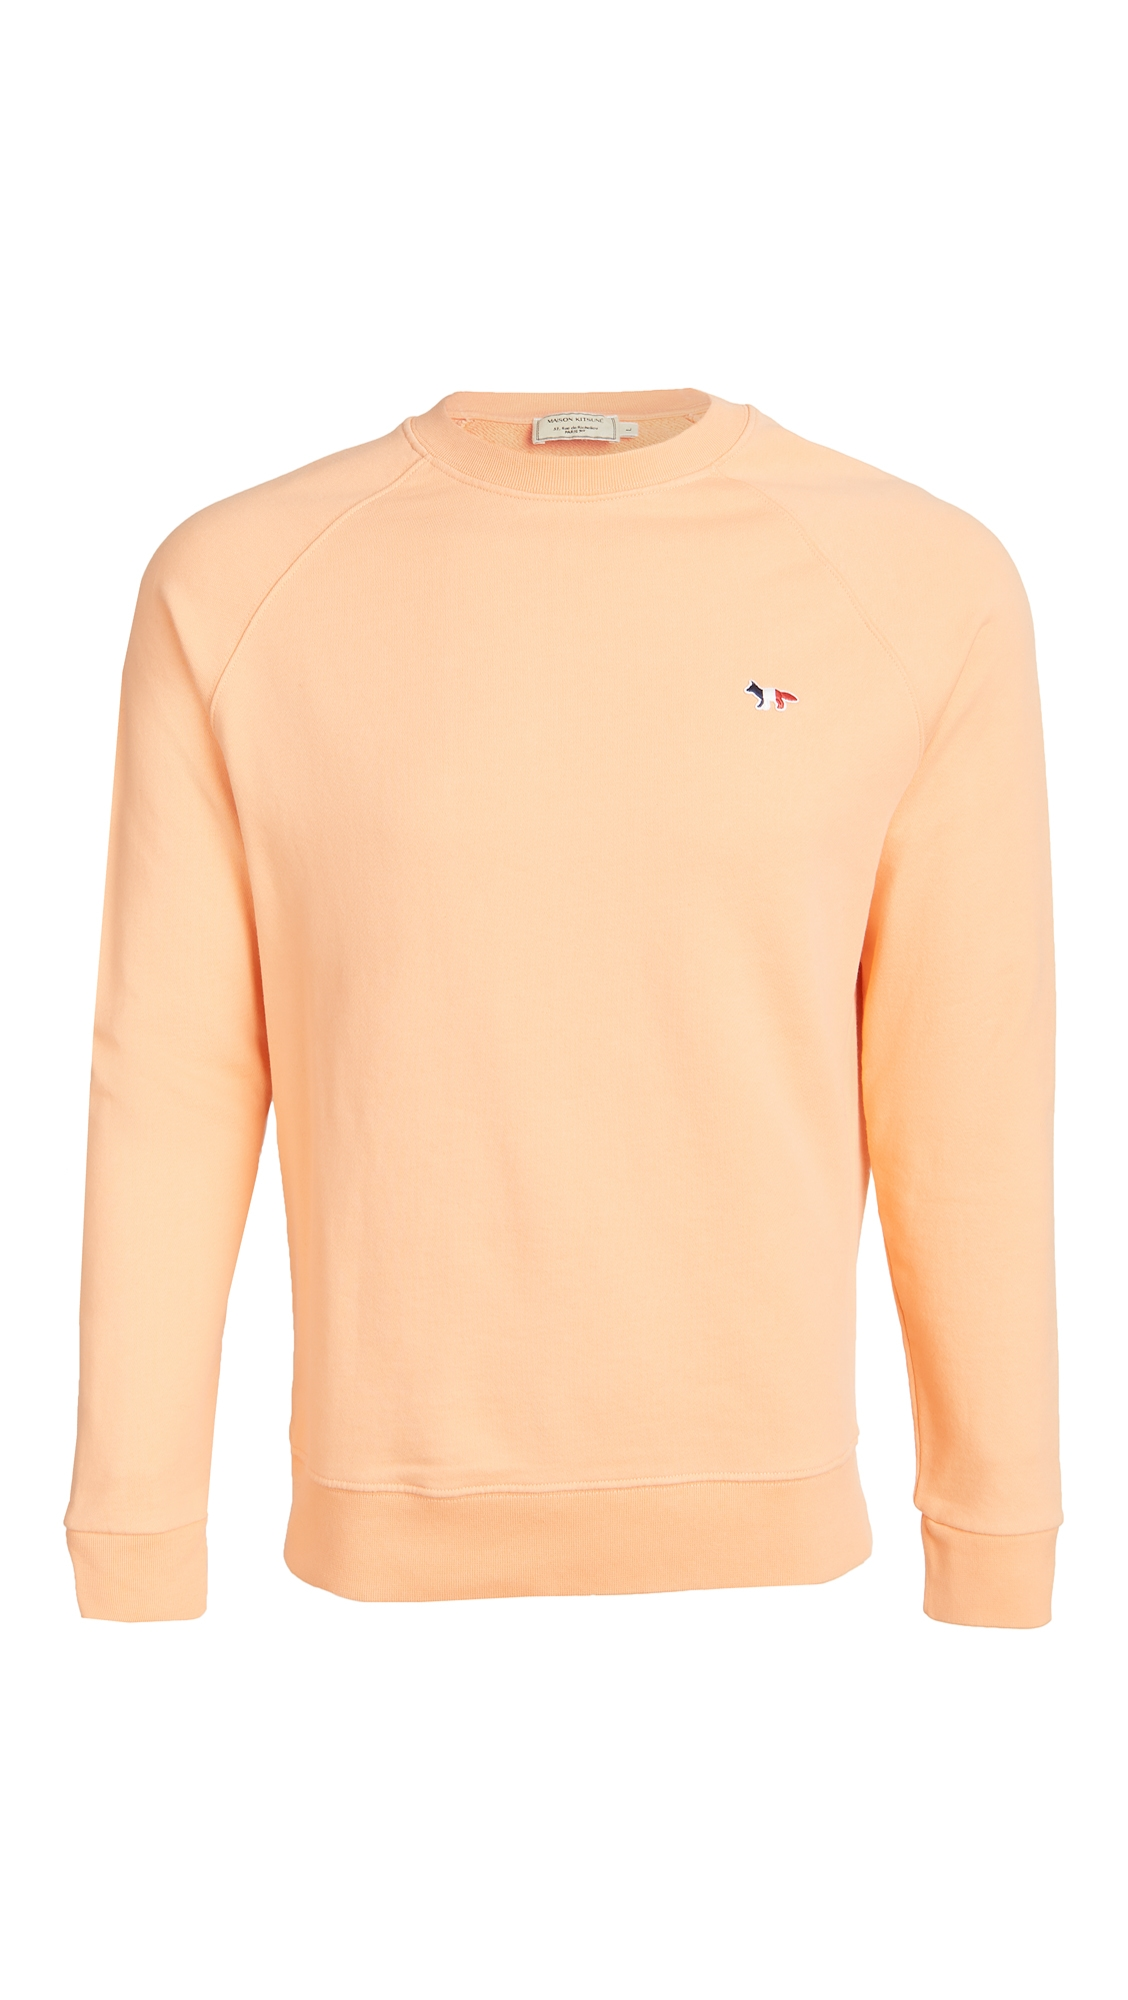 Crew Neck Sweatshirt with Tricolor Fox Patch